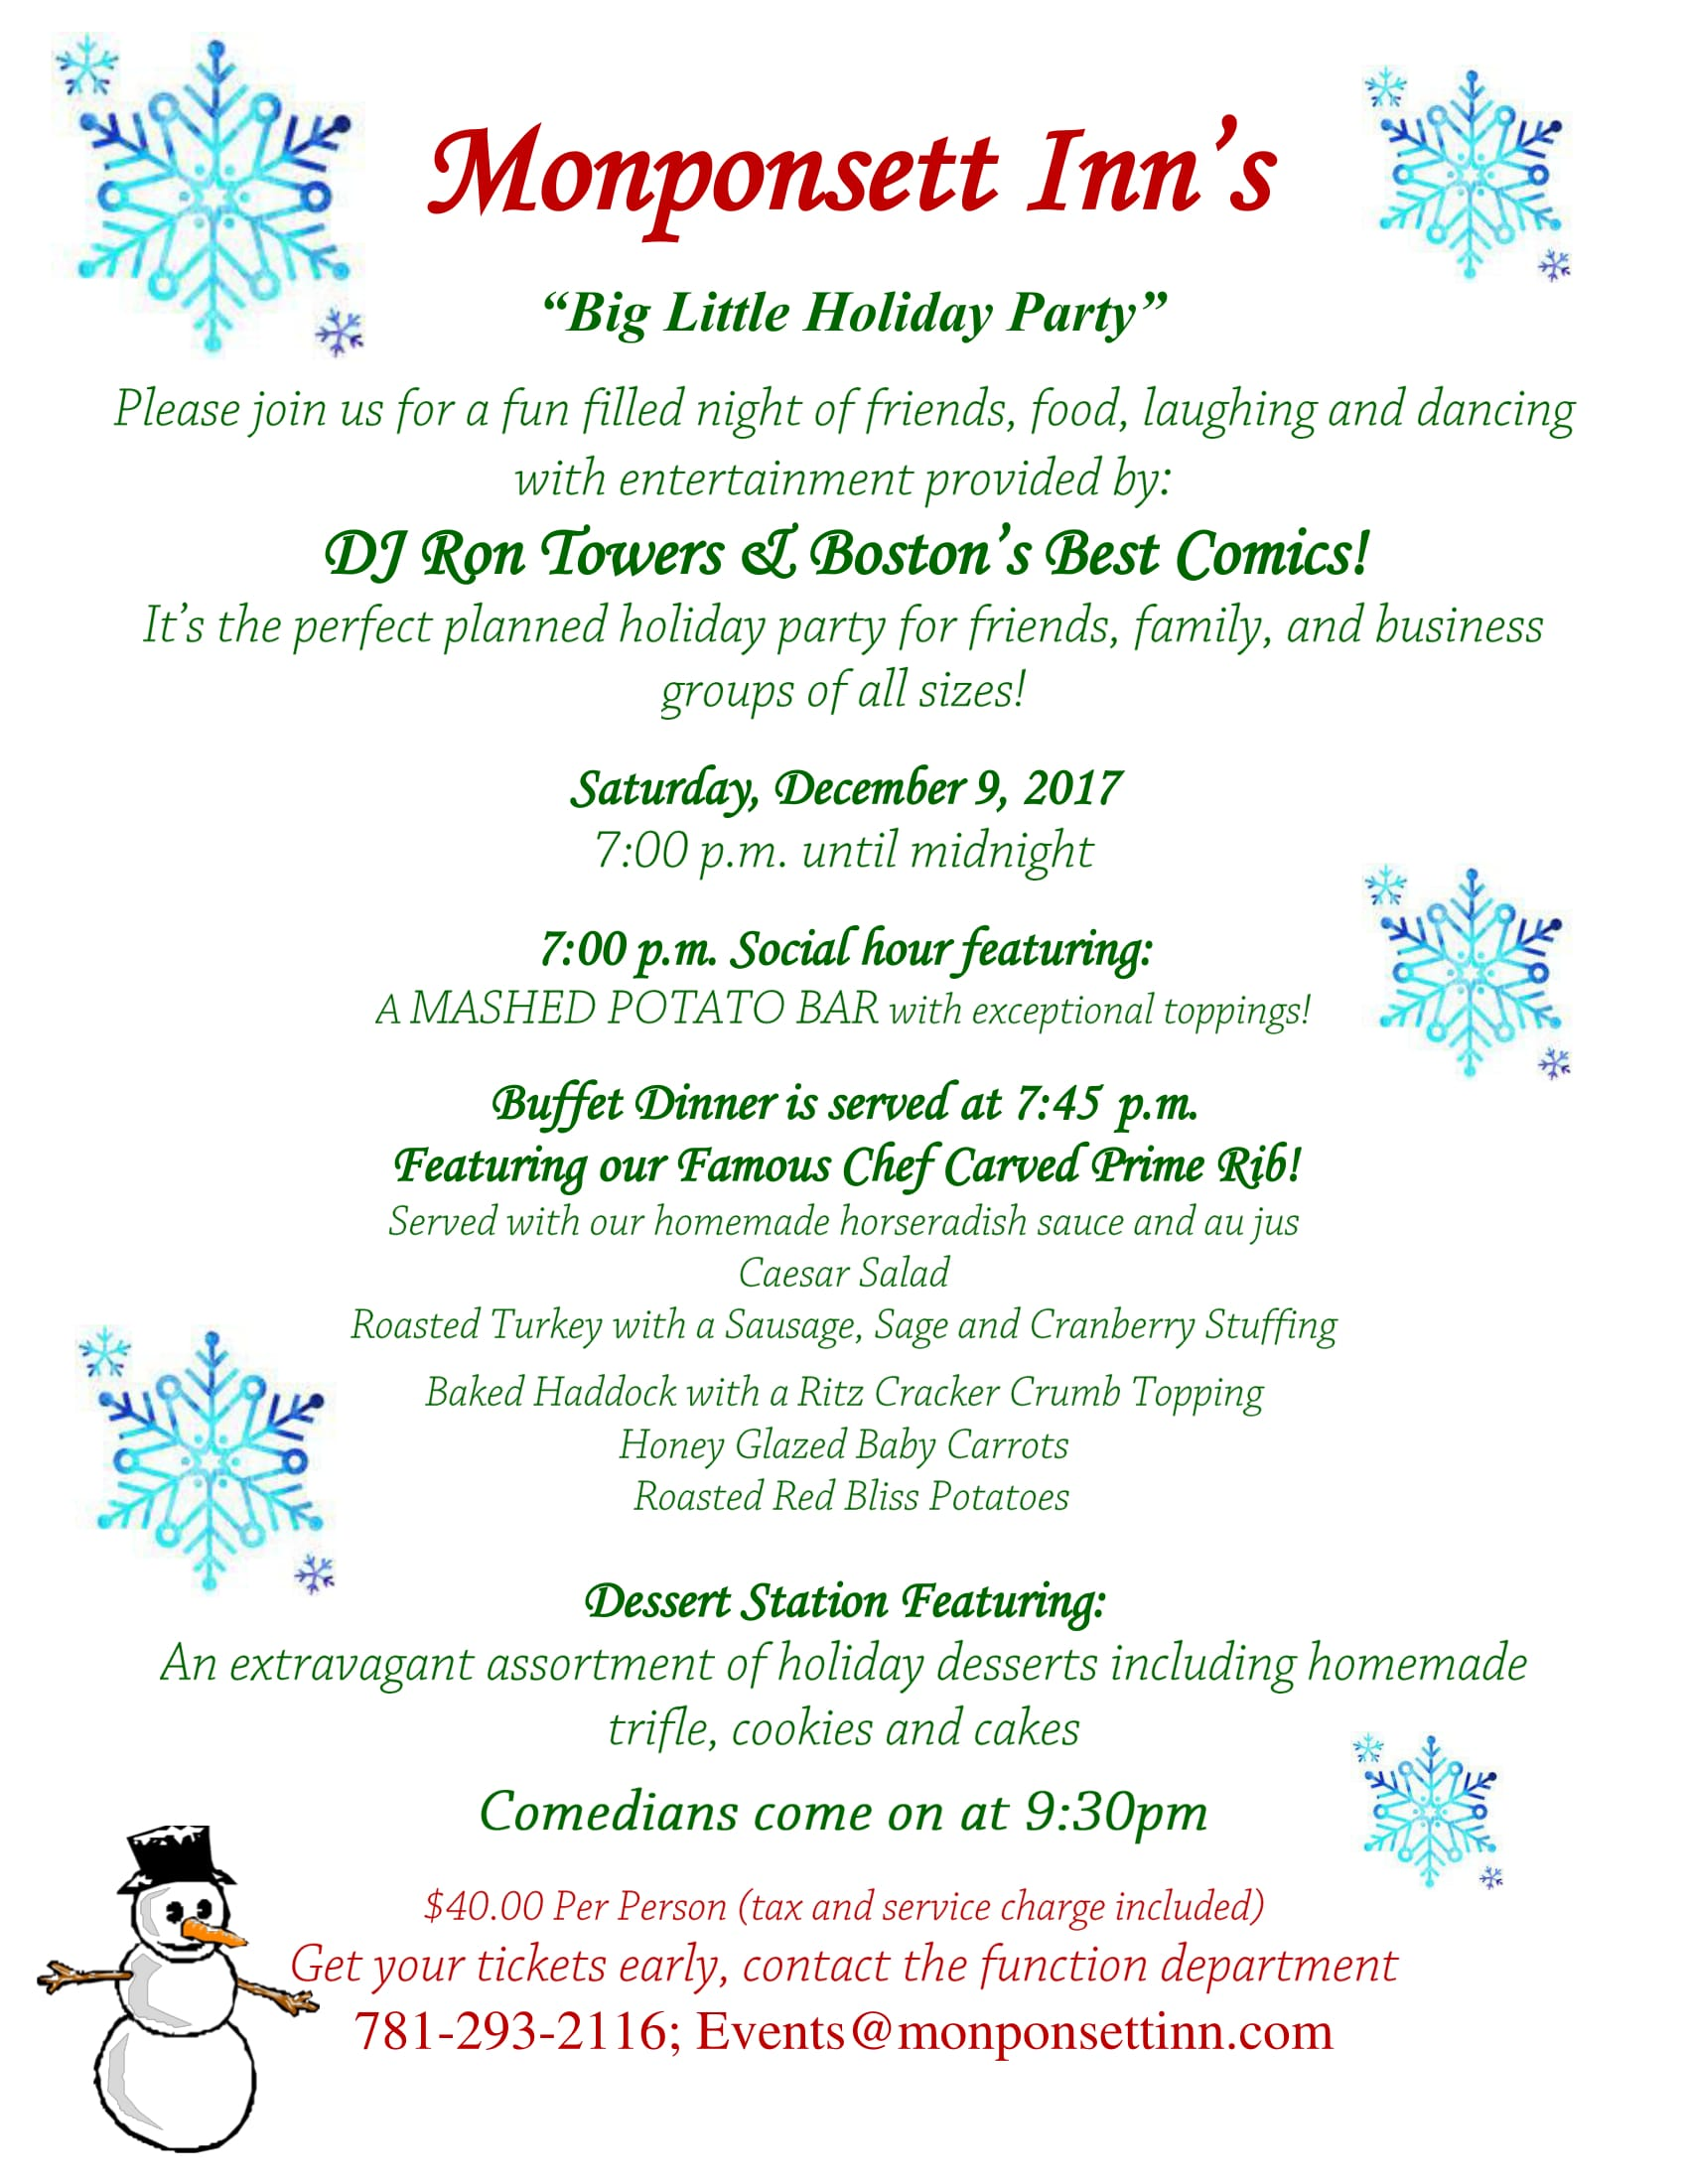 Big_Little_Holiday_Party-1